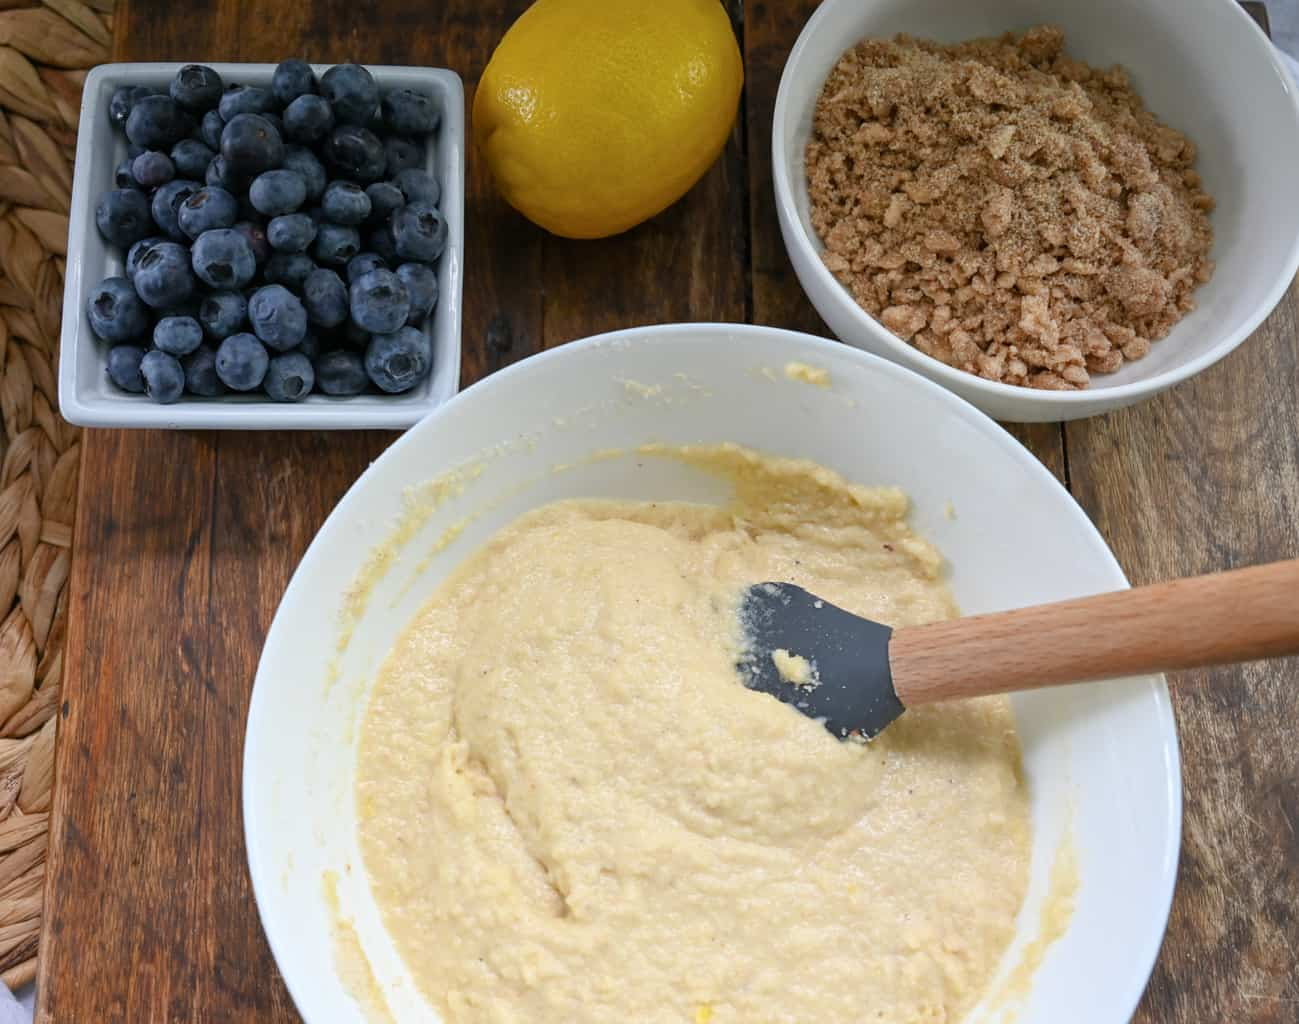 keto blueberry buckle cake being made